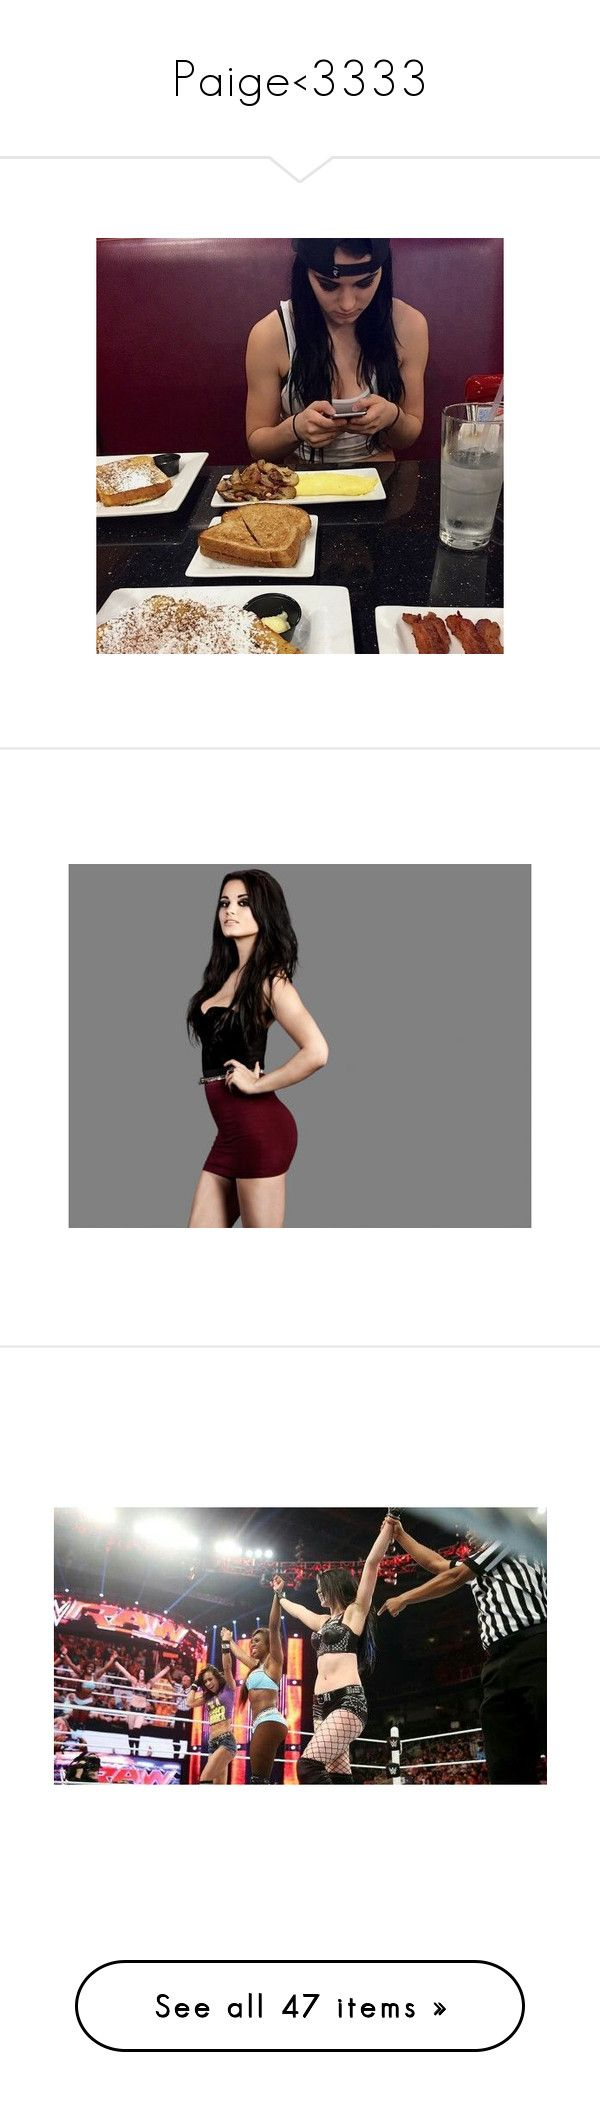 """Paige<3333"" by imblissedoff ❤ liked on Polyvore featuring wwe, divas, paige, tops, wwe tops, accessories, manip, people, wwe diva and aj lee"